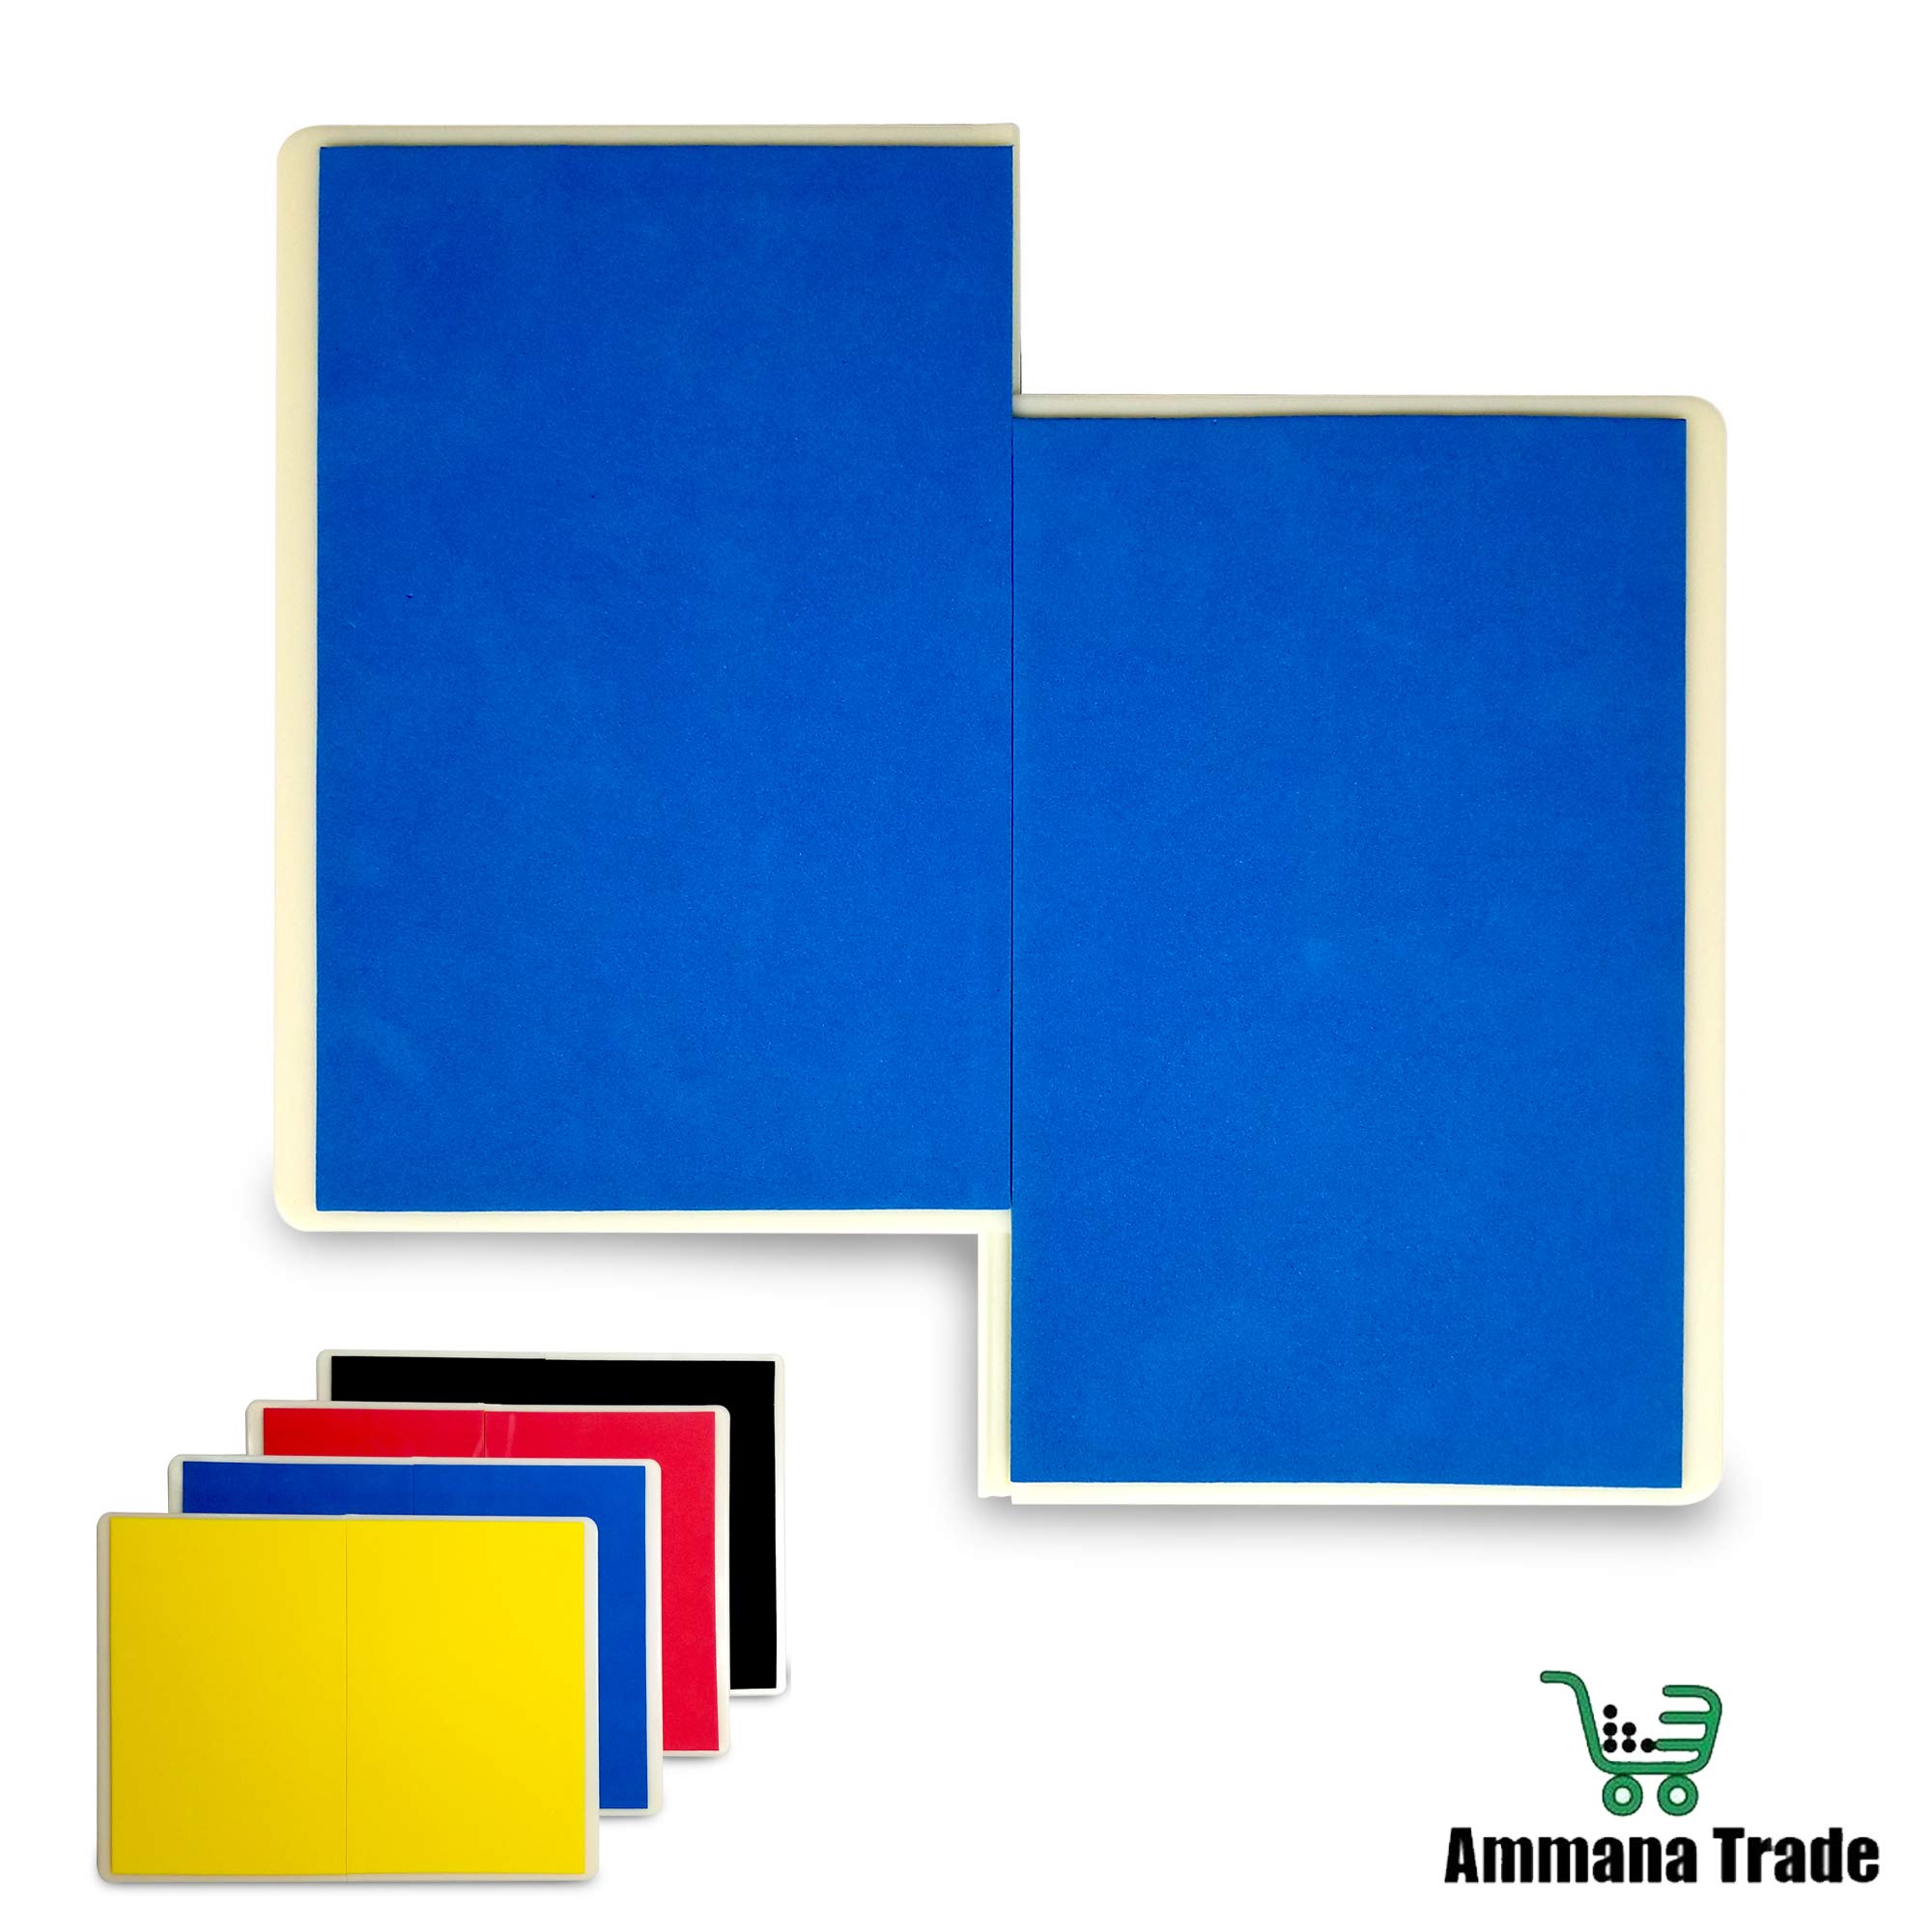 Ammana Trade Rebreakable Punching Boards, Taekwondo Karate and Martial Arts Board for Kids and Adults, Boxing Equipment and Kickboxing